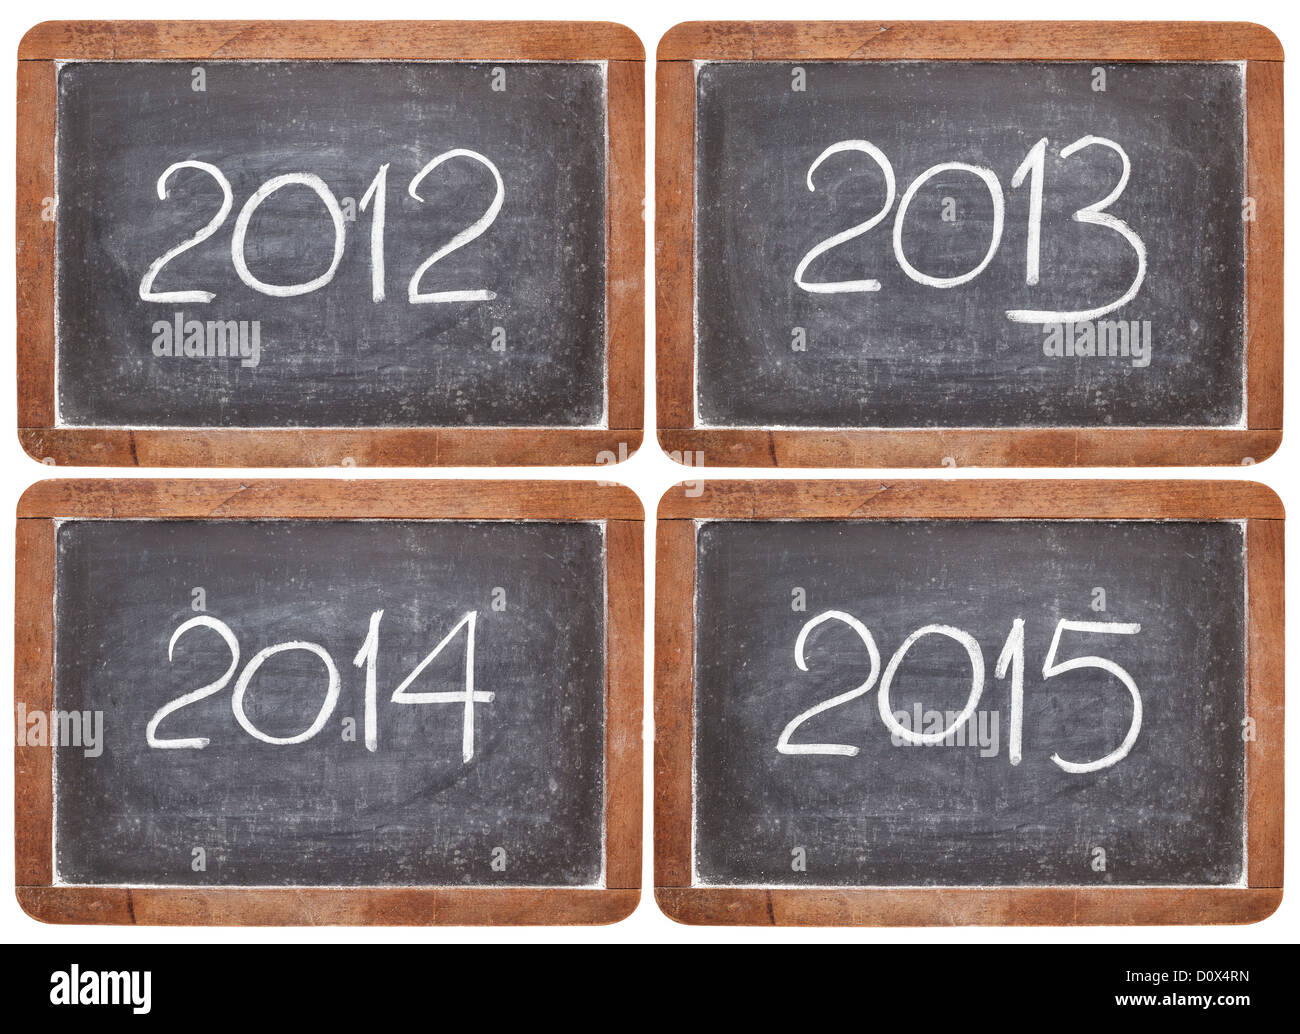 current and incoming years, 2012, 2013, 2014, 2015 on vintage slate blackboards, isolated on white - Stock Image